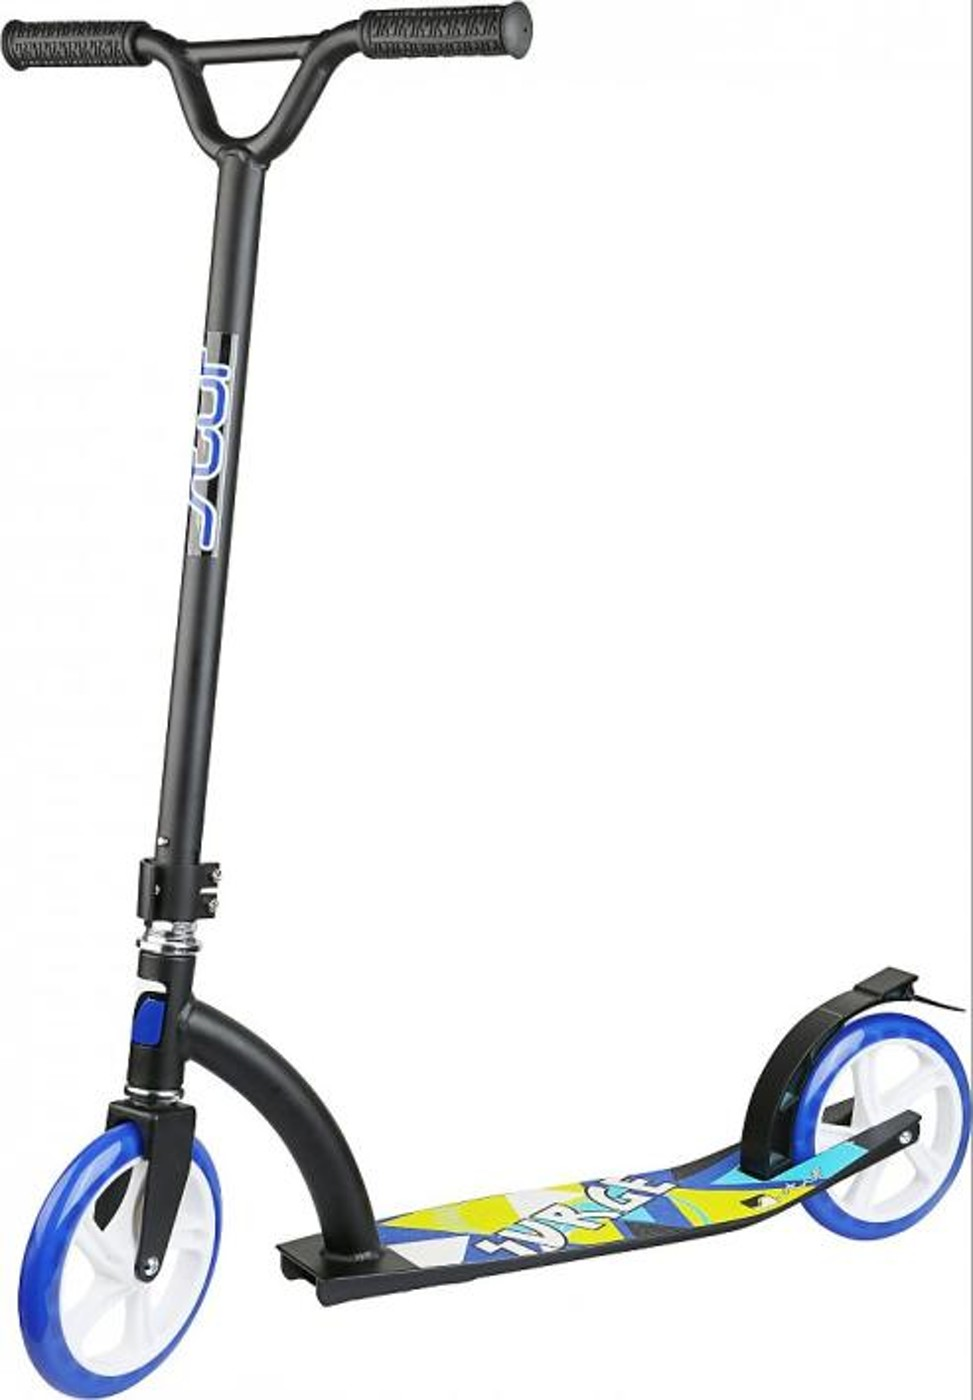 STUF Scooter S6000 / SS15